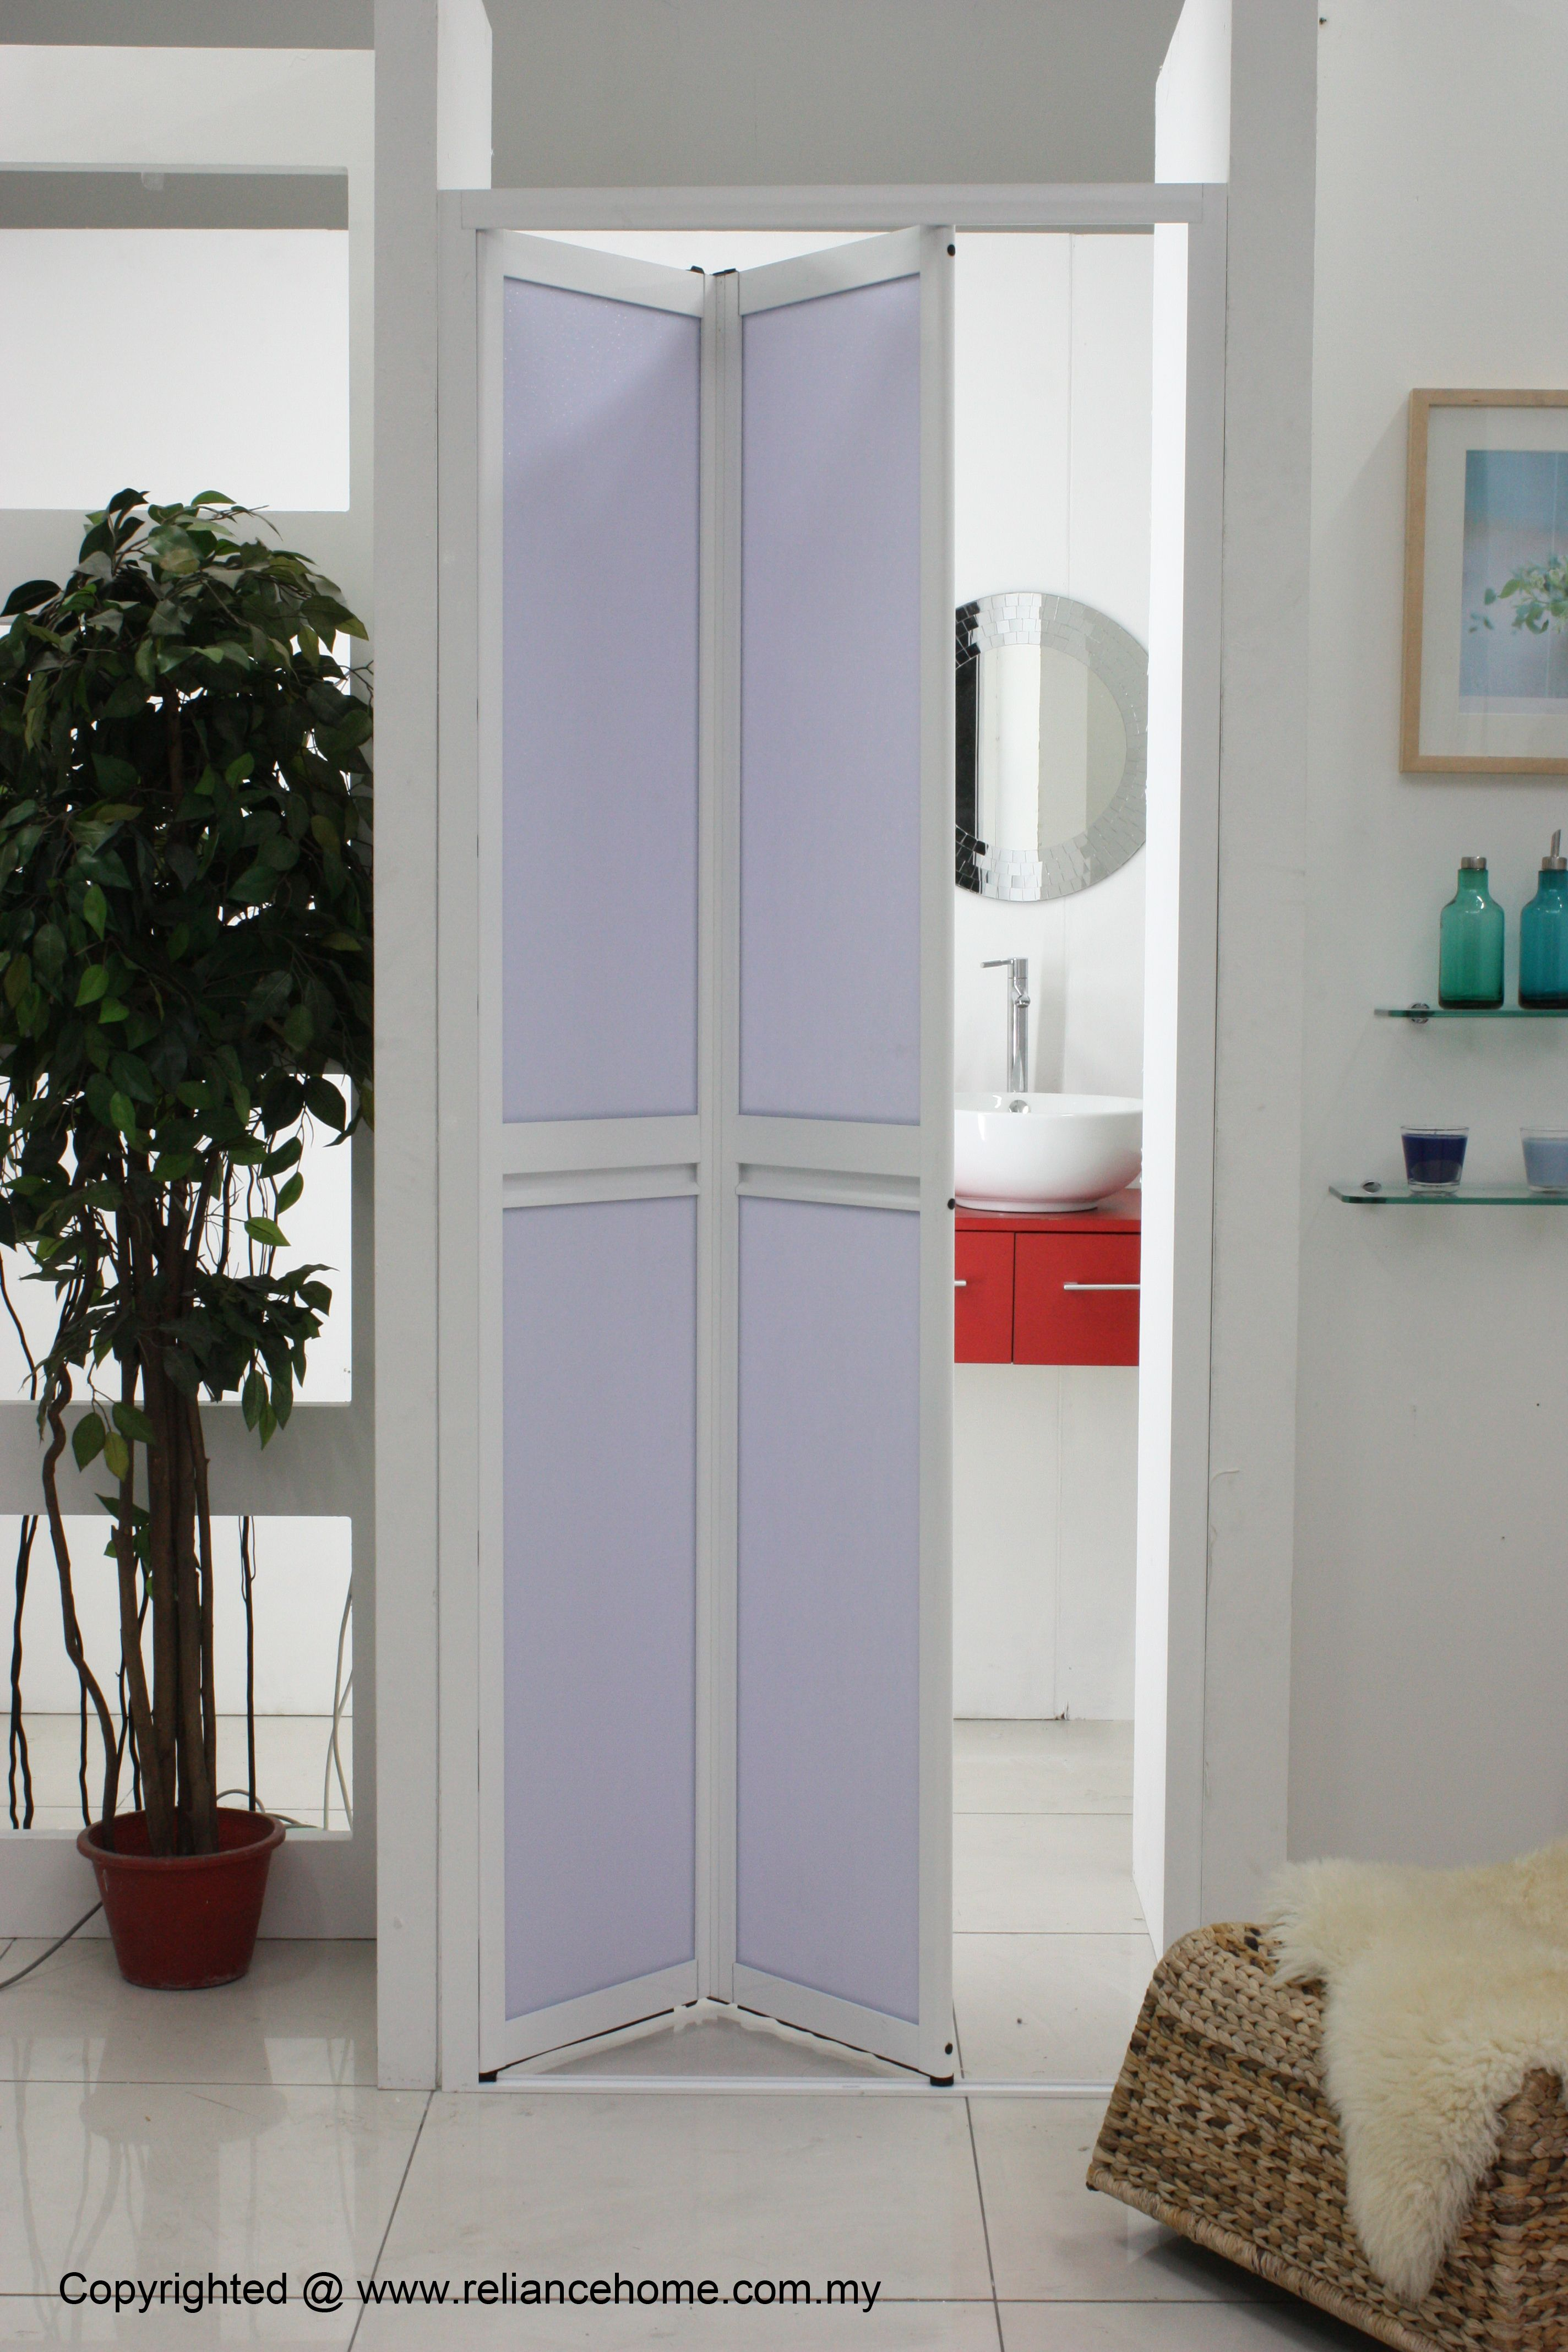 If You Try Small Door Bathroom You Could Use Bathroom Sliding Door Also Can Folding Sliding Door Will Saves Spa Sliding Bathroom Doors Folding Doors Maids Room